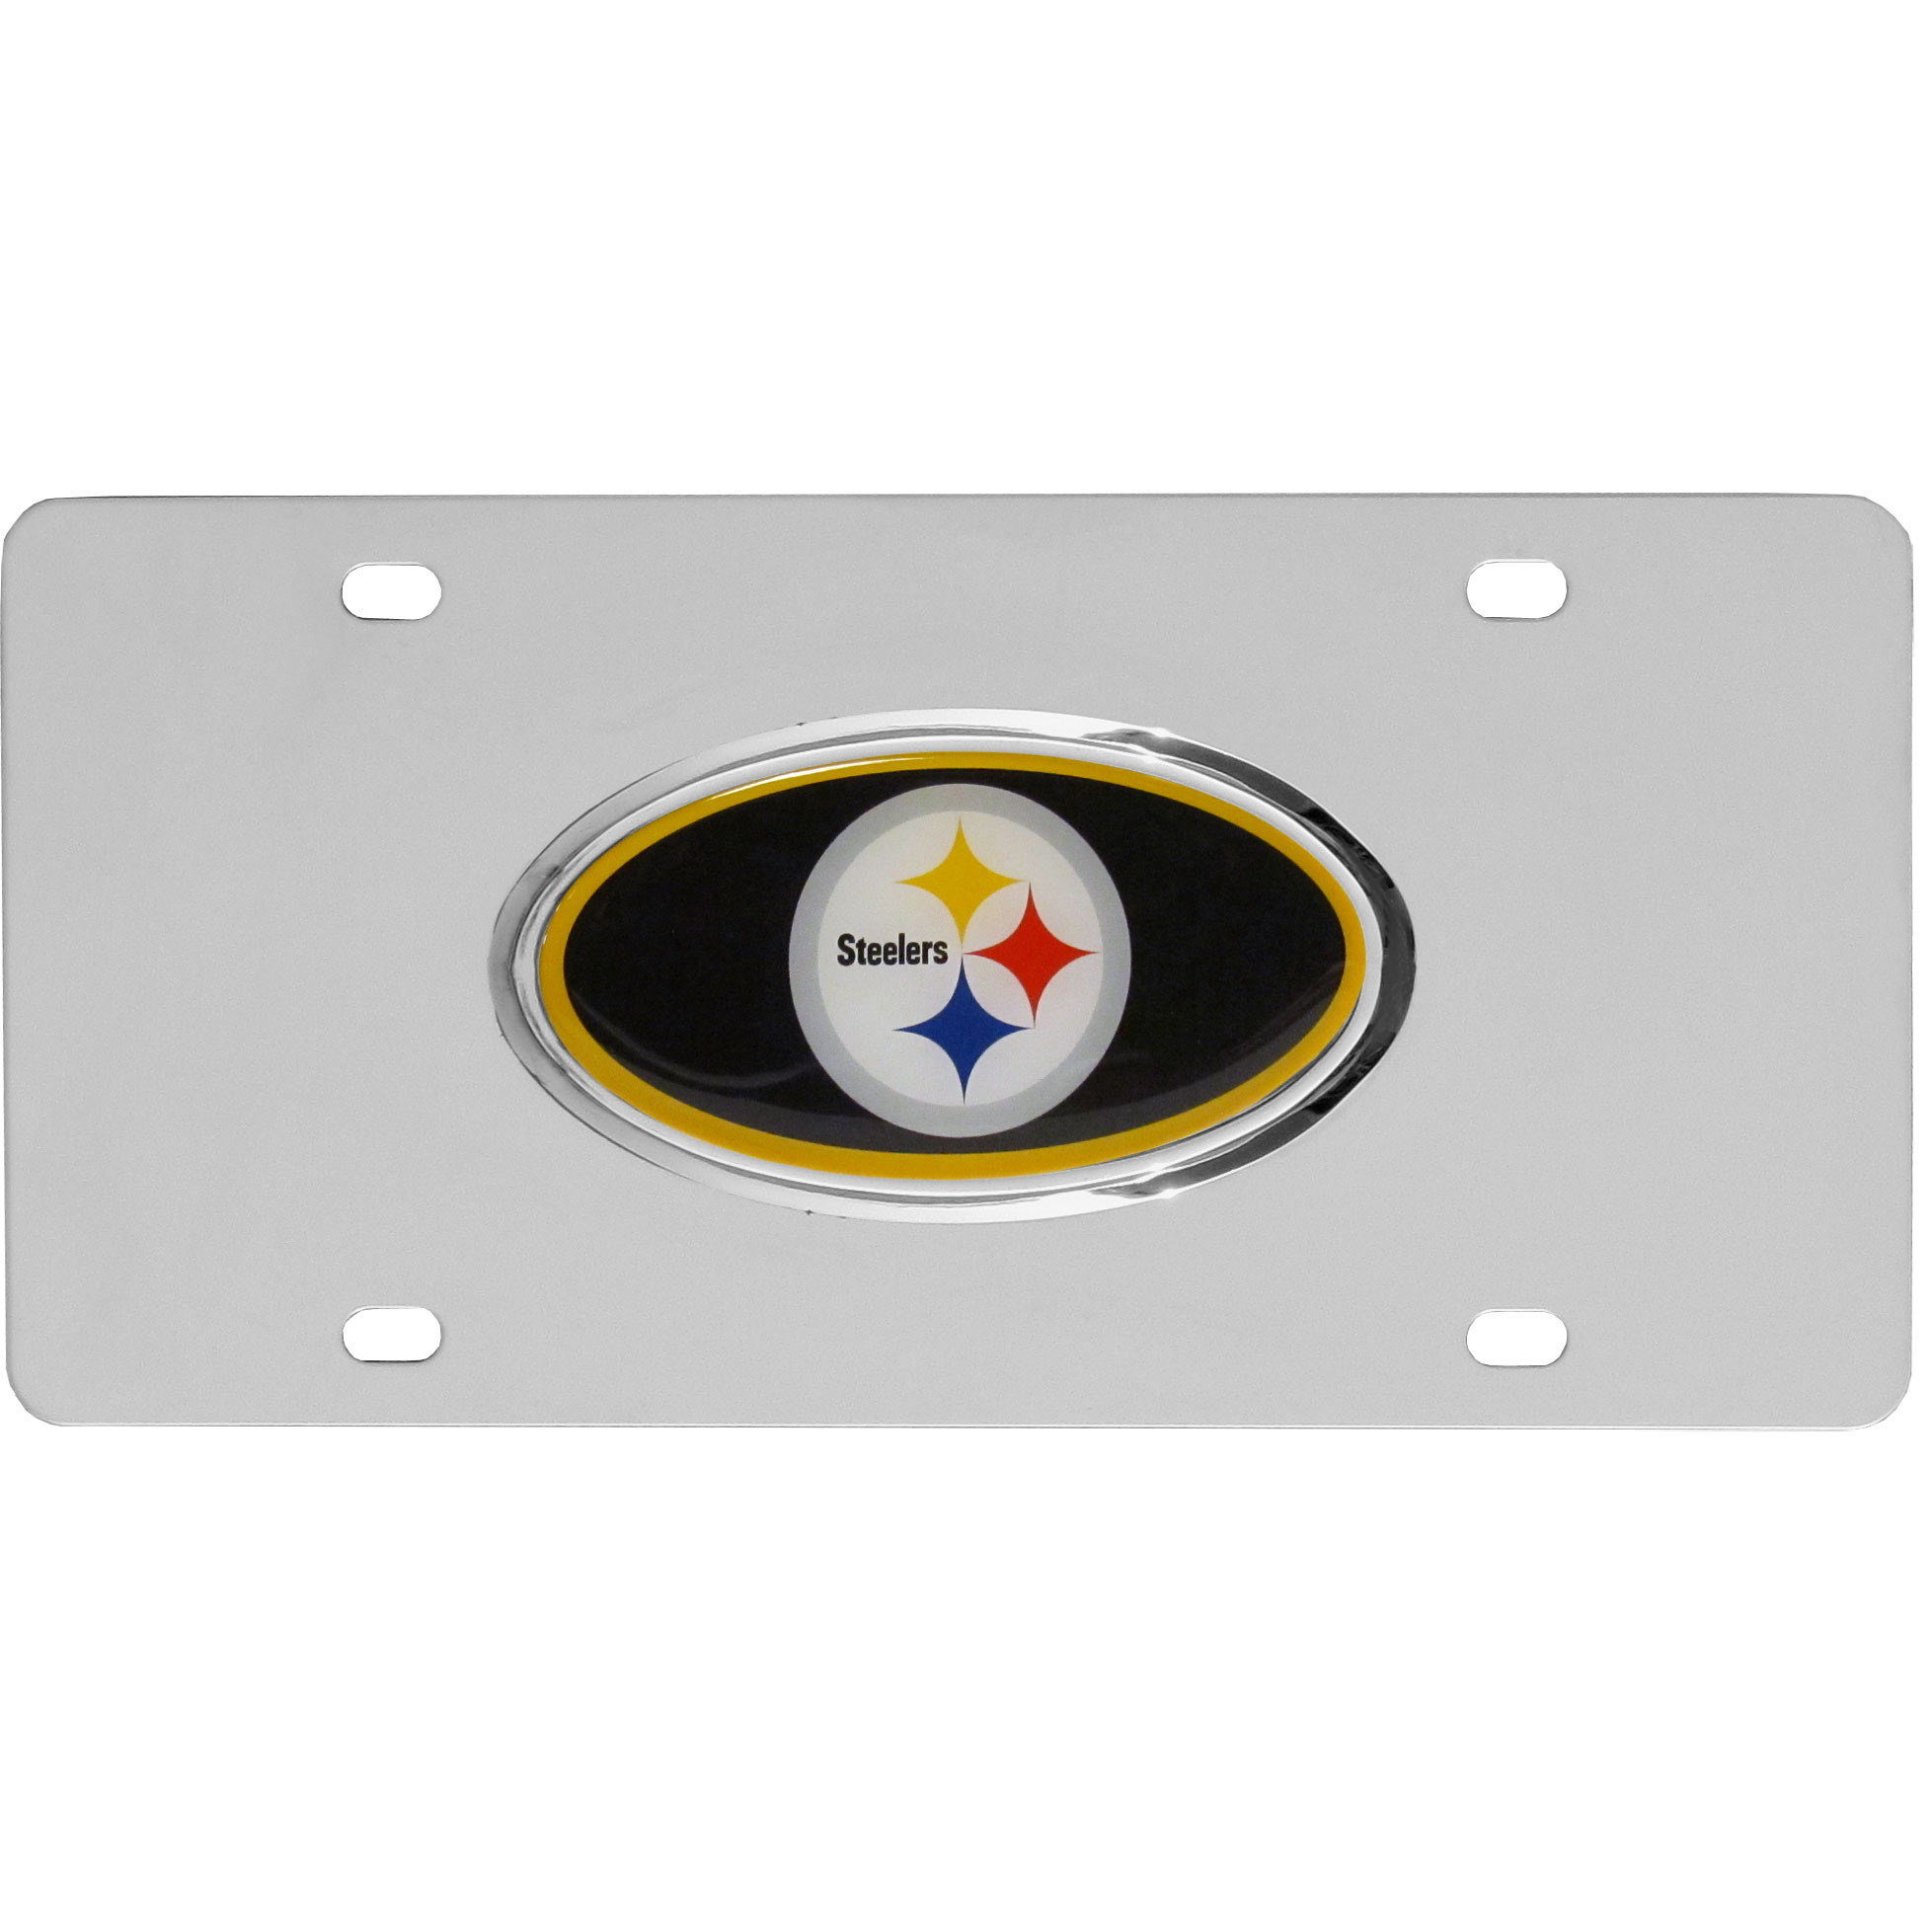 Pittsburgh Steelers Steel License Plate with Domed Emblem - Show off your team pride on your vehicle or mounted on your wall with this Pittsburgh Steelers stainless steel license plate with raised emblem with chrome border.